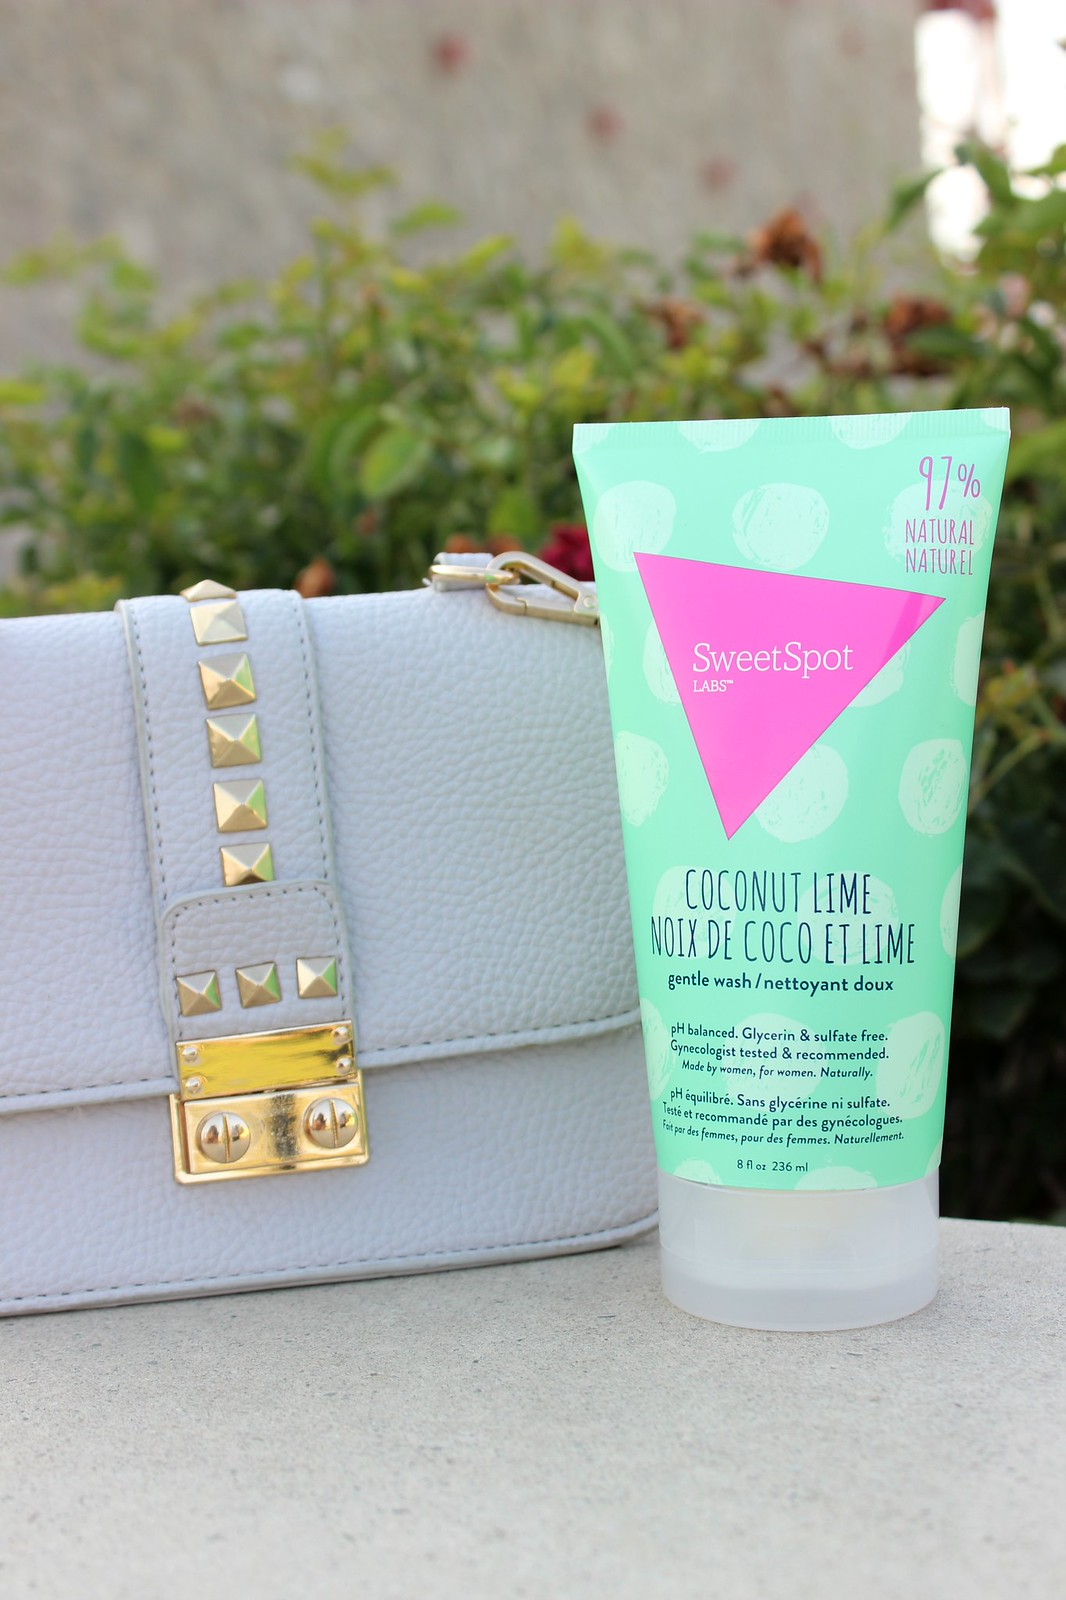 SweetSpot Labs Coconut Lime Gentle Wash and On-The-Go Wipes #sweetspotlabs #mysweetspot